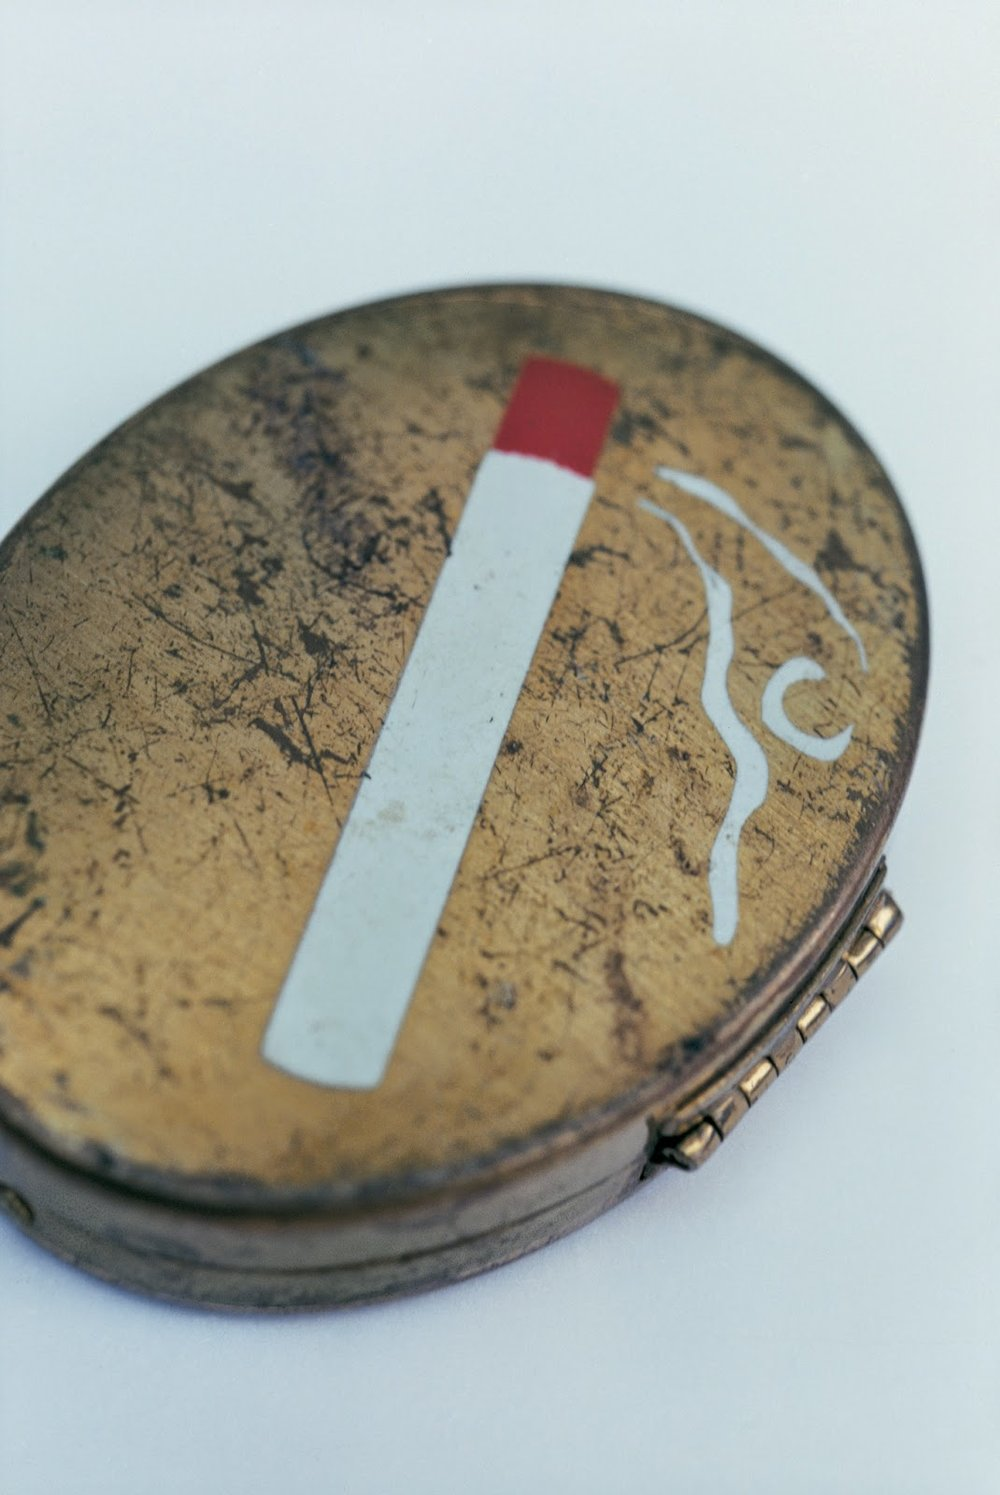 #53 The artist's makeup compact